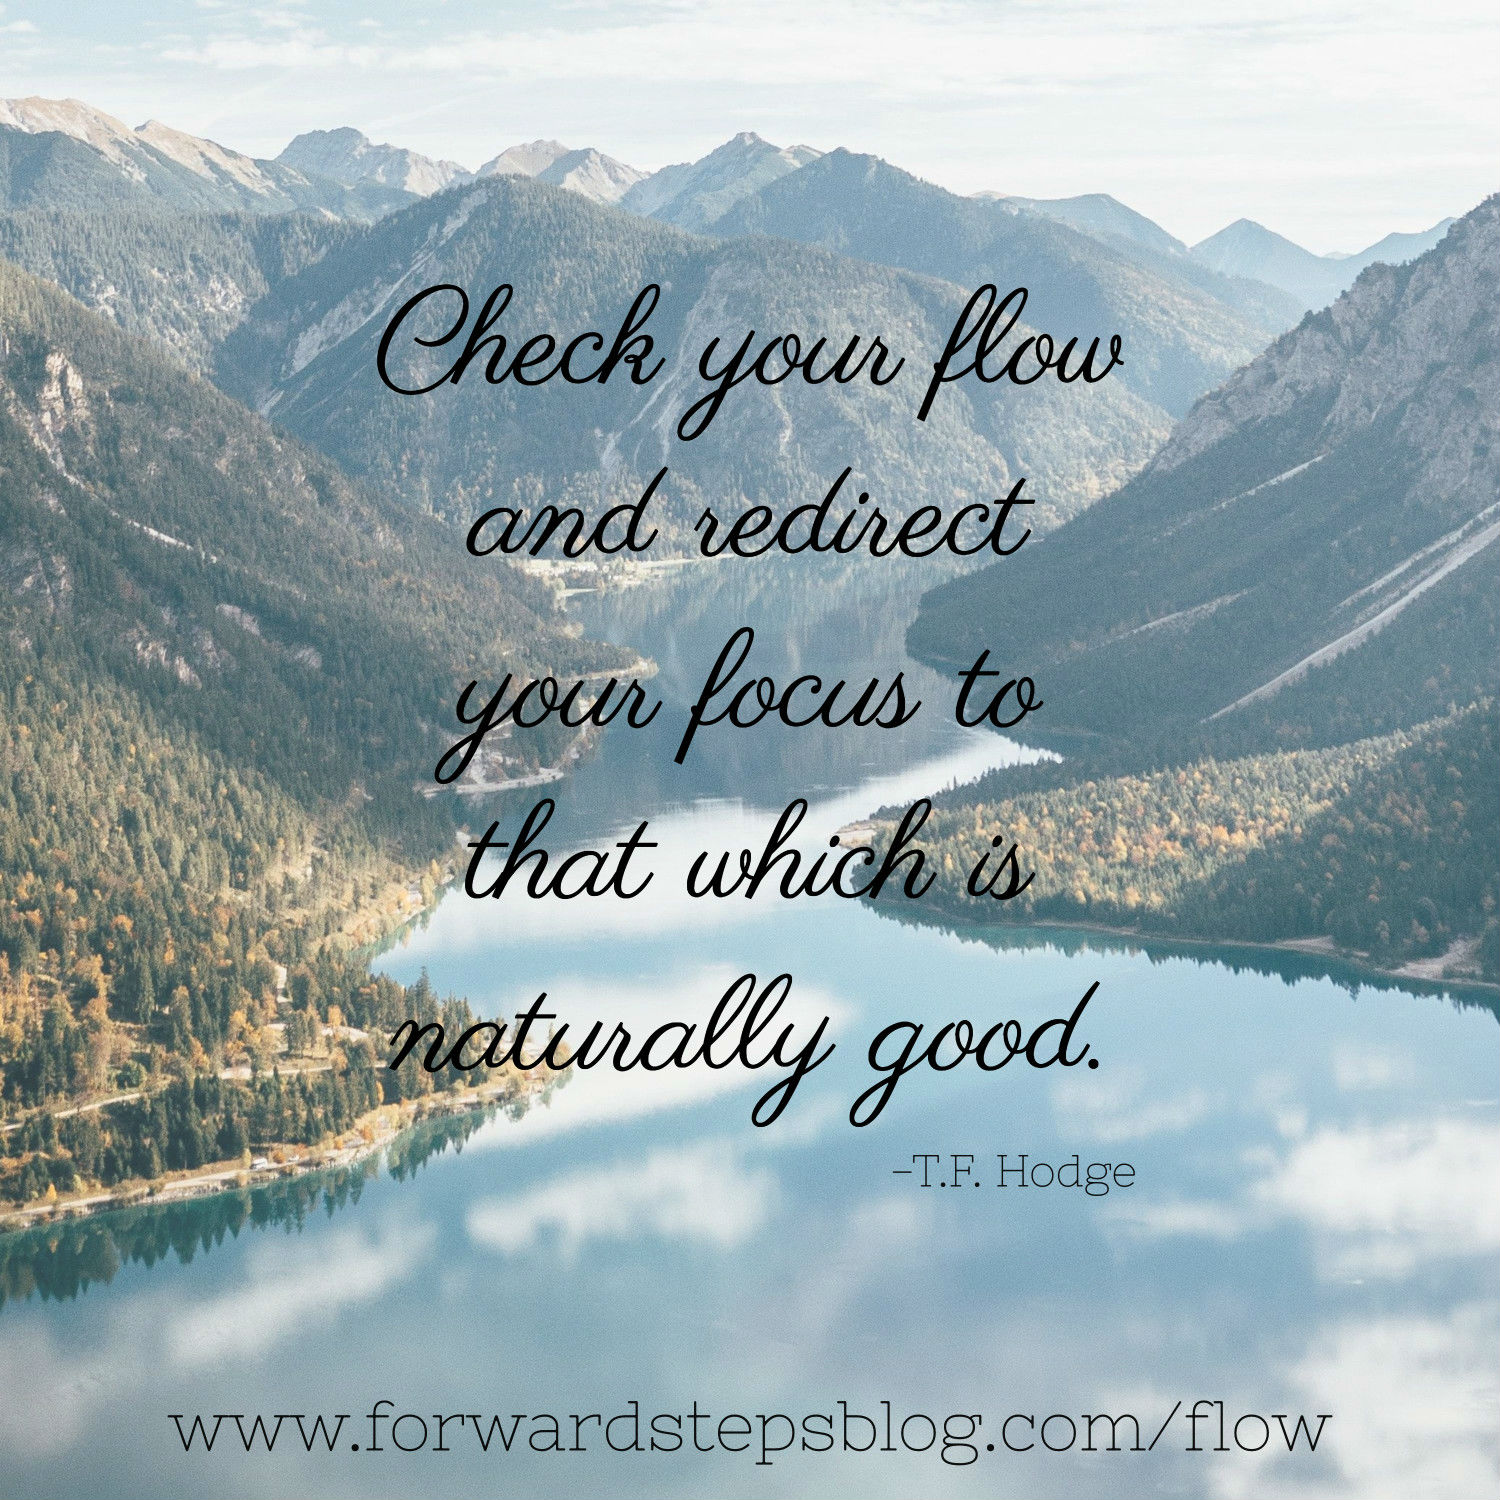 Focus on flow not ebb - Forward Steps image_4